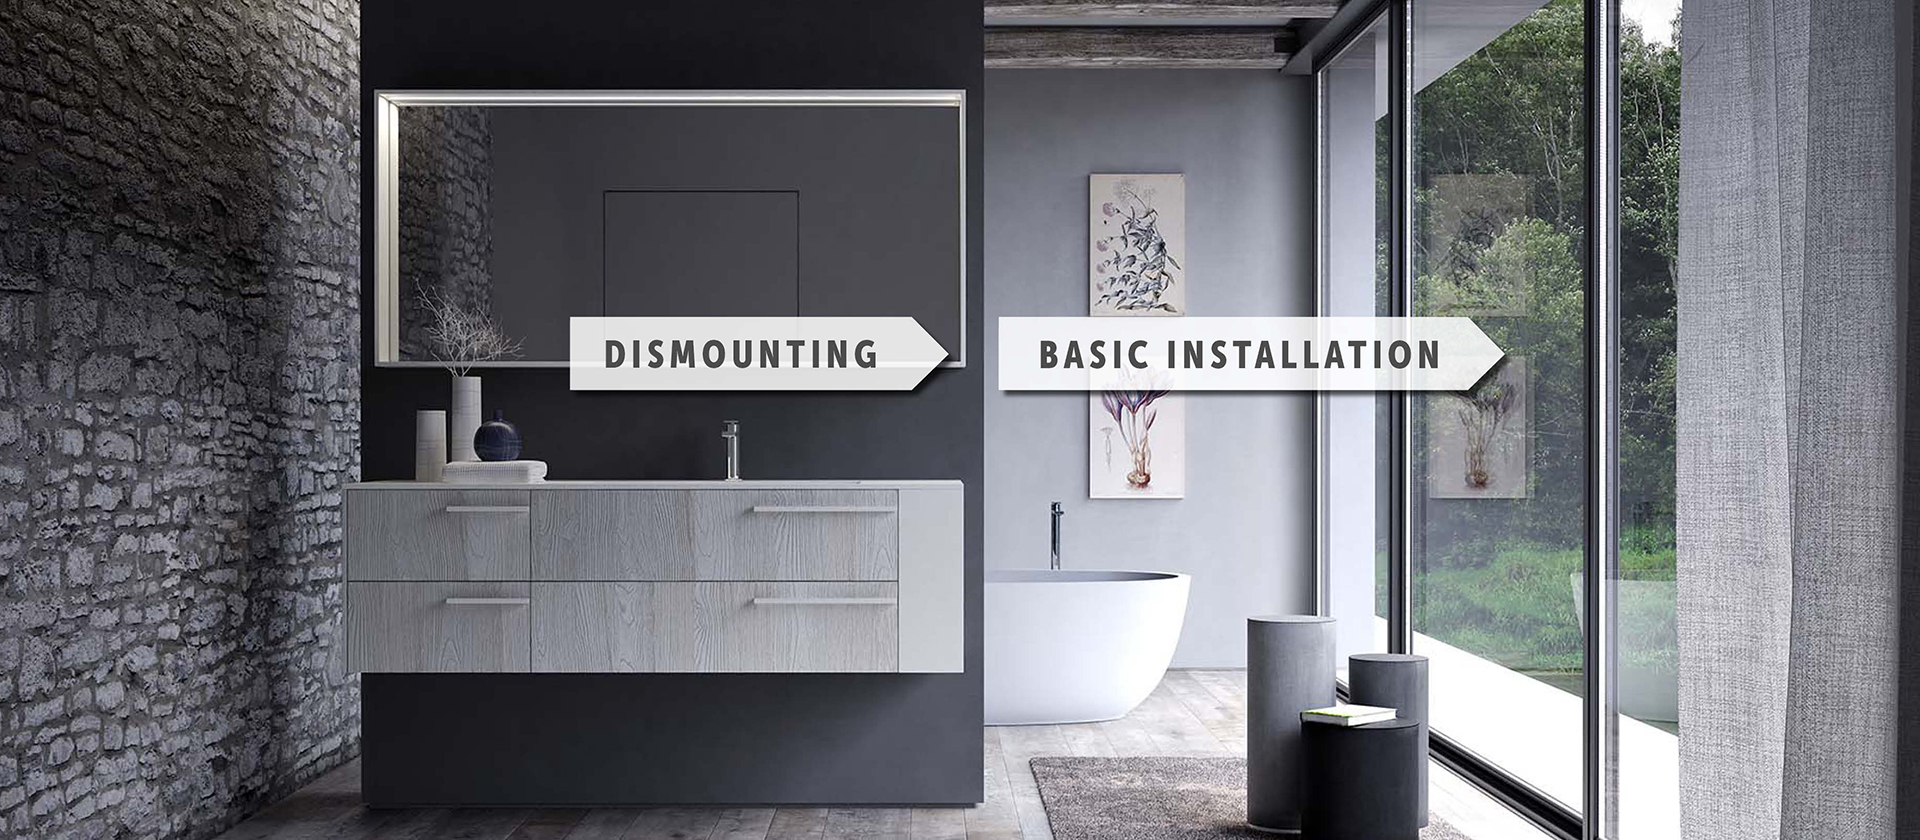 Dismounting, Basic Installation